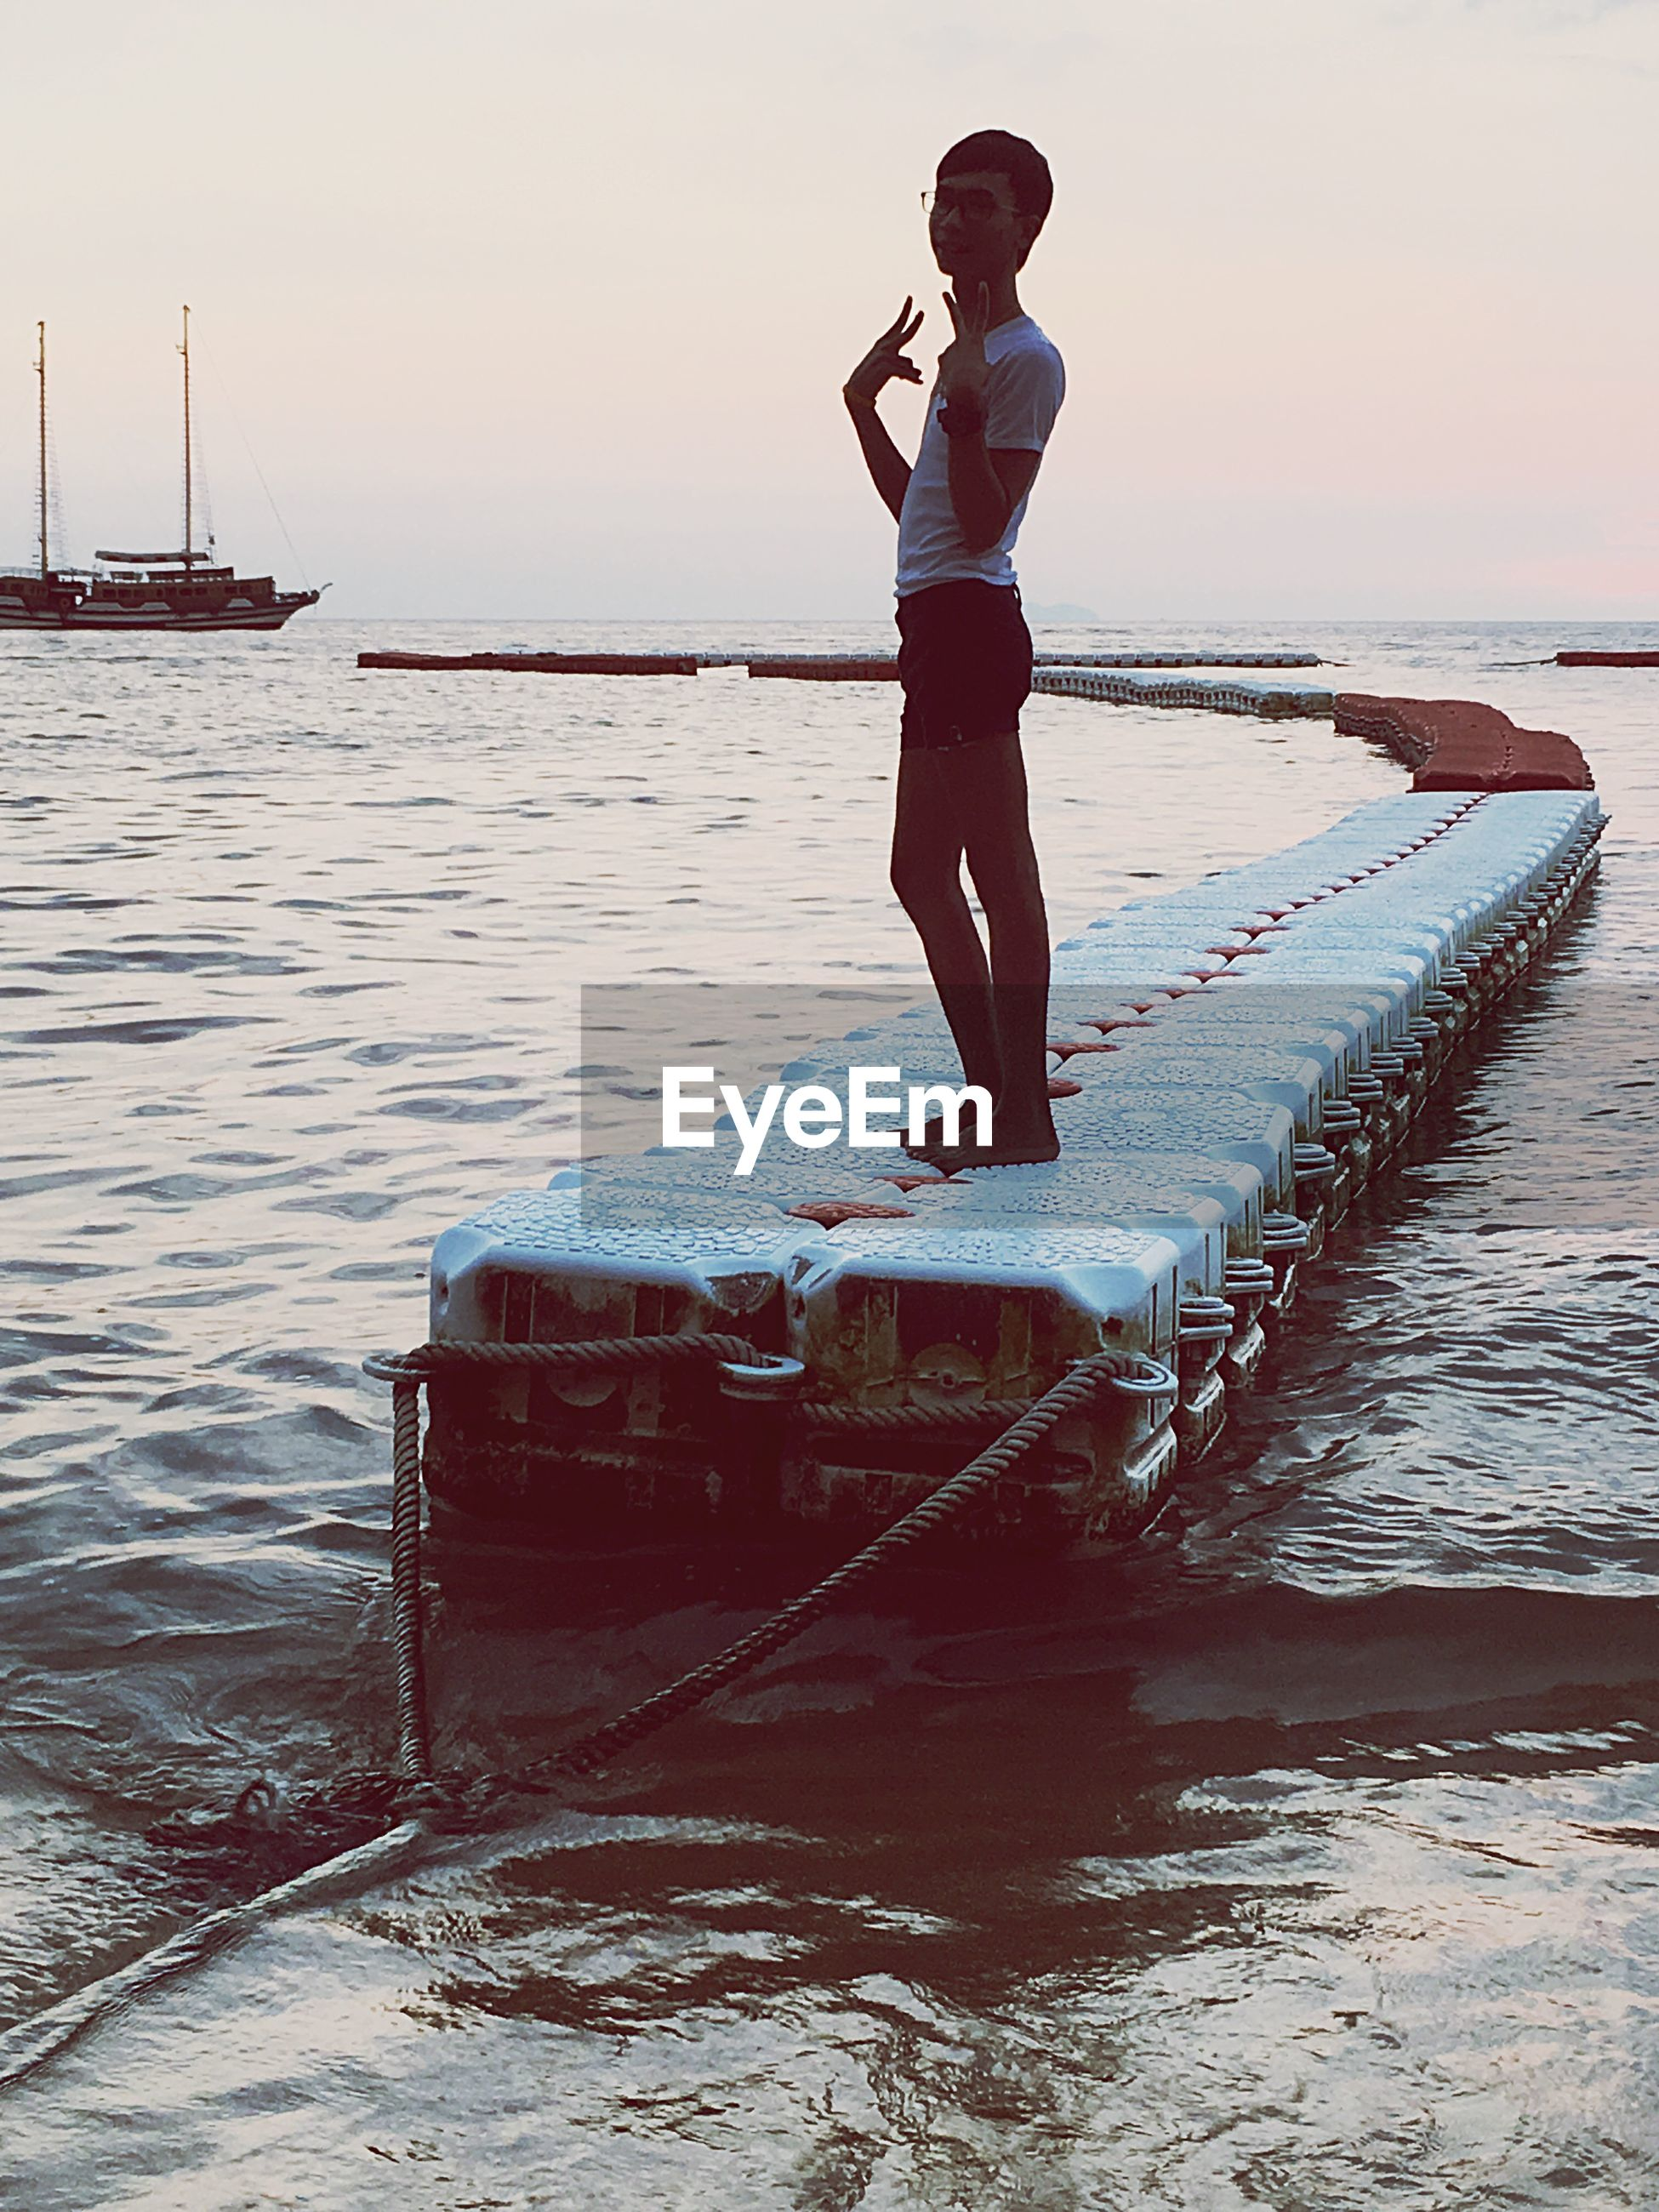 water, sea, nautical vessel, full length, rear view, lifestyles, leisure activity, pier, standing, clear sky, sky, casual clothing, horizon over water, beach, boat, transportation, shore, men